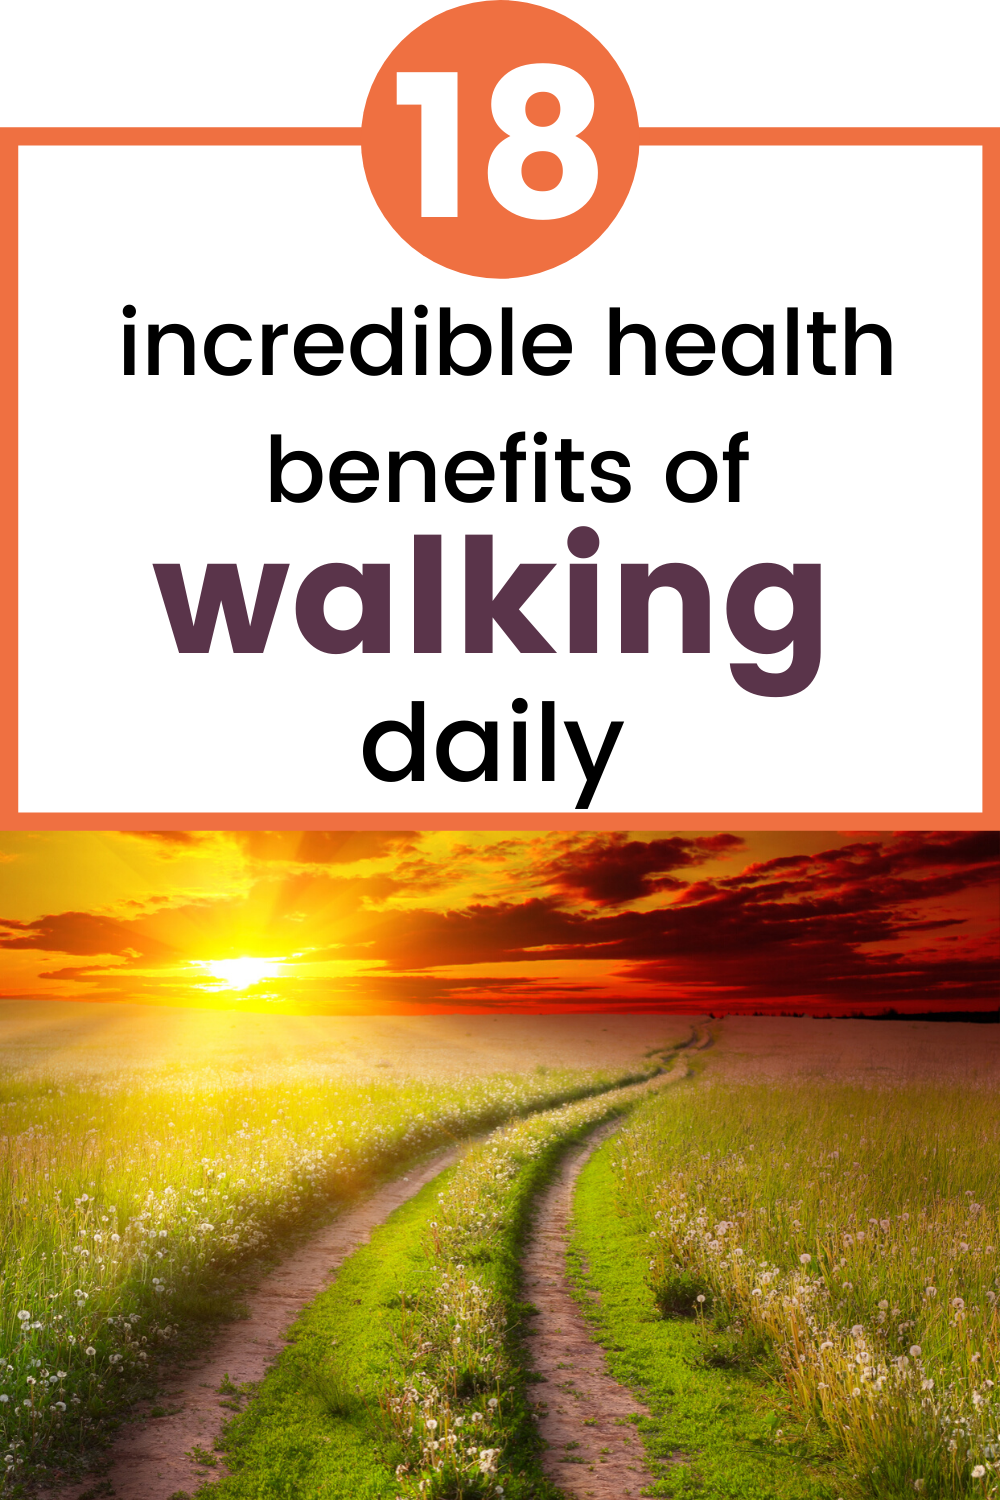 18 incredible health benefits of walking daily